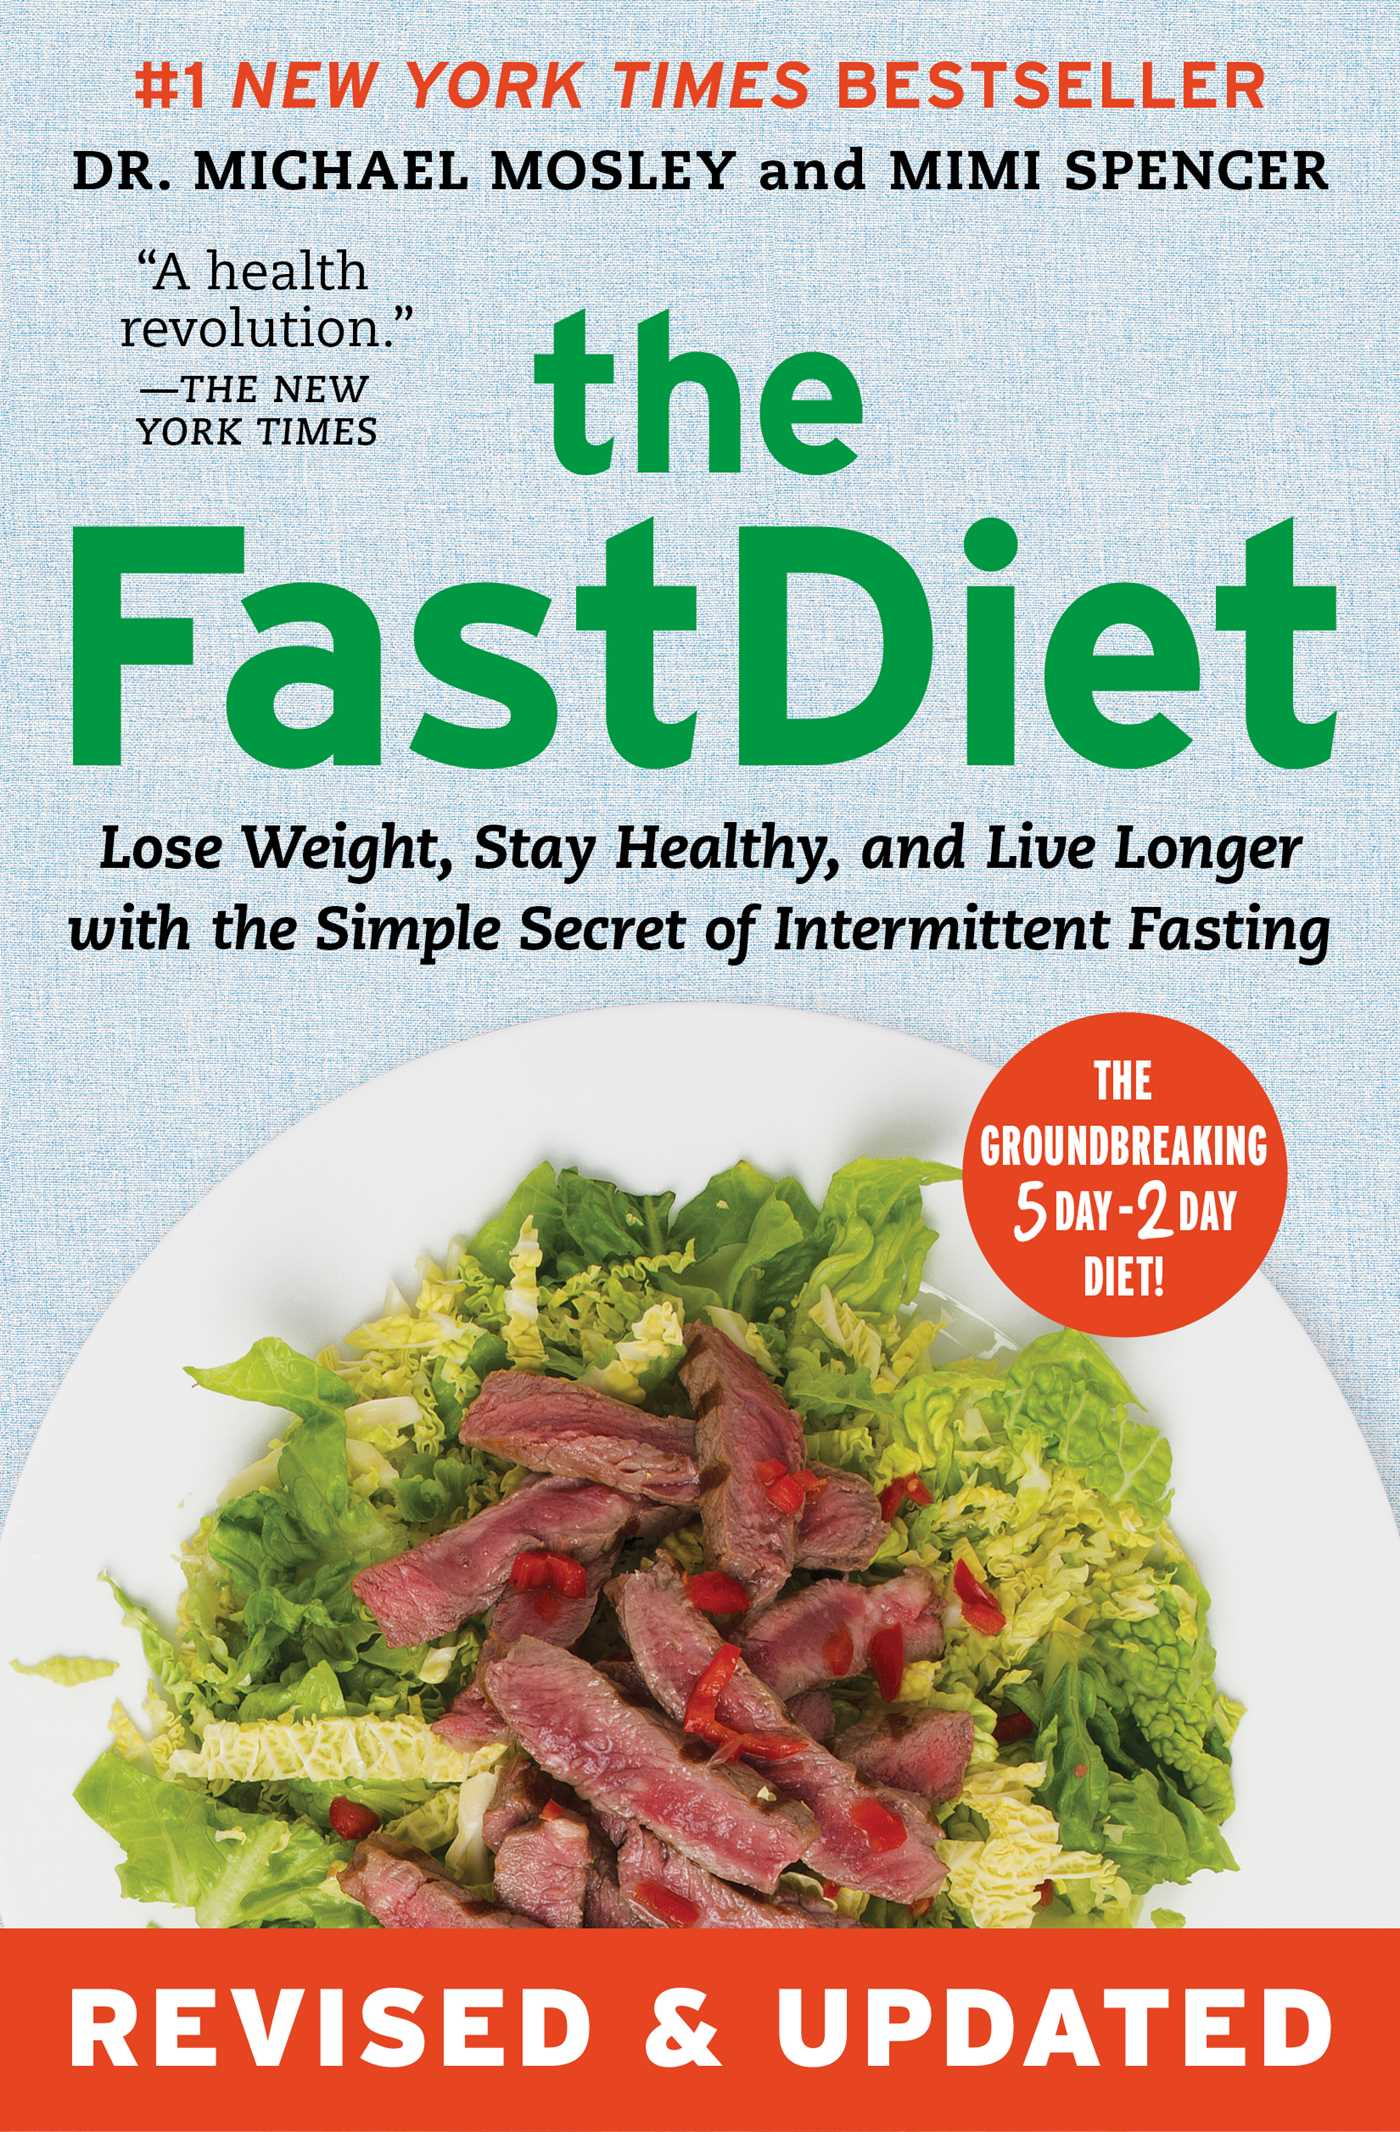 The-fastdiet-revised-updated-9781476734965_hr